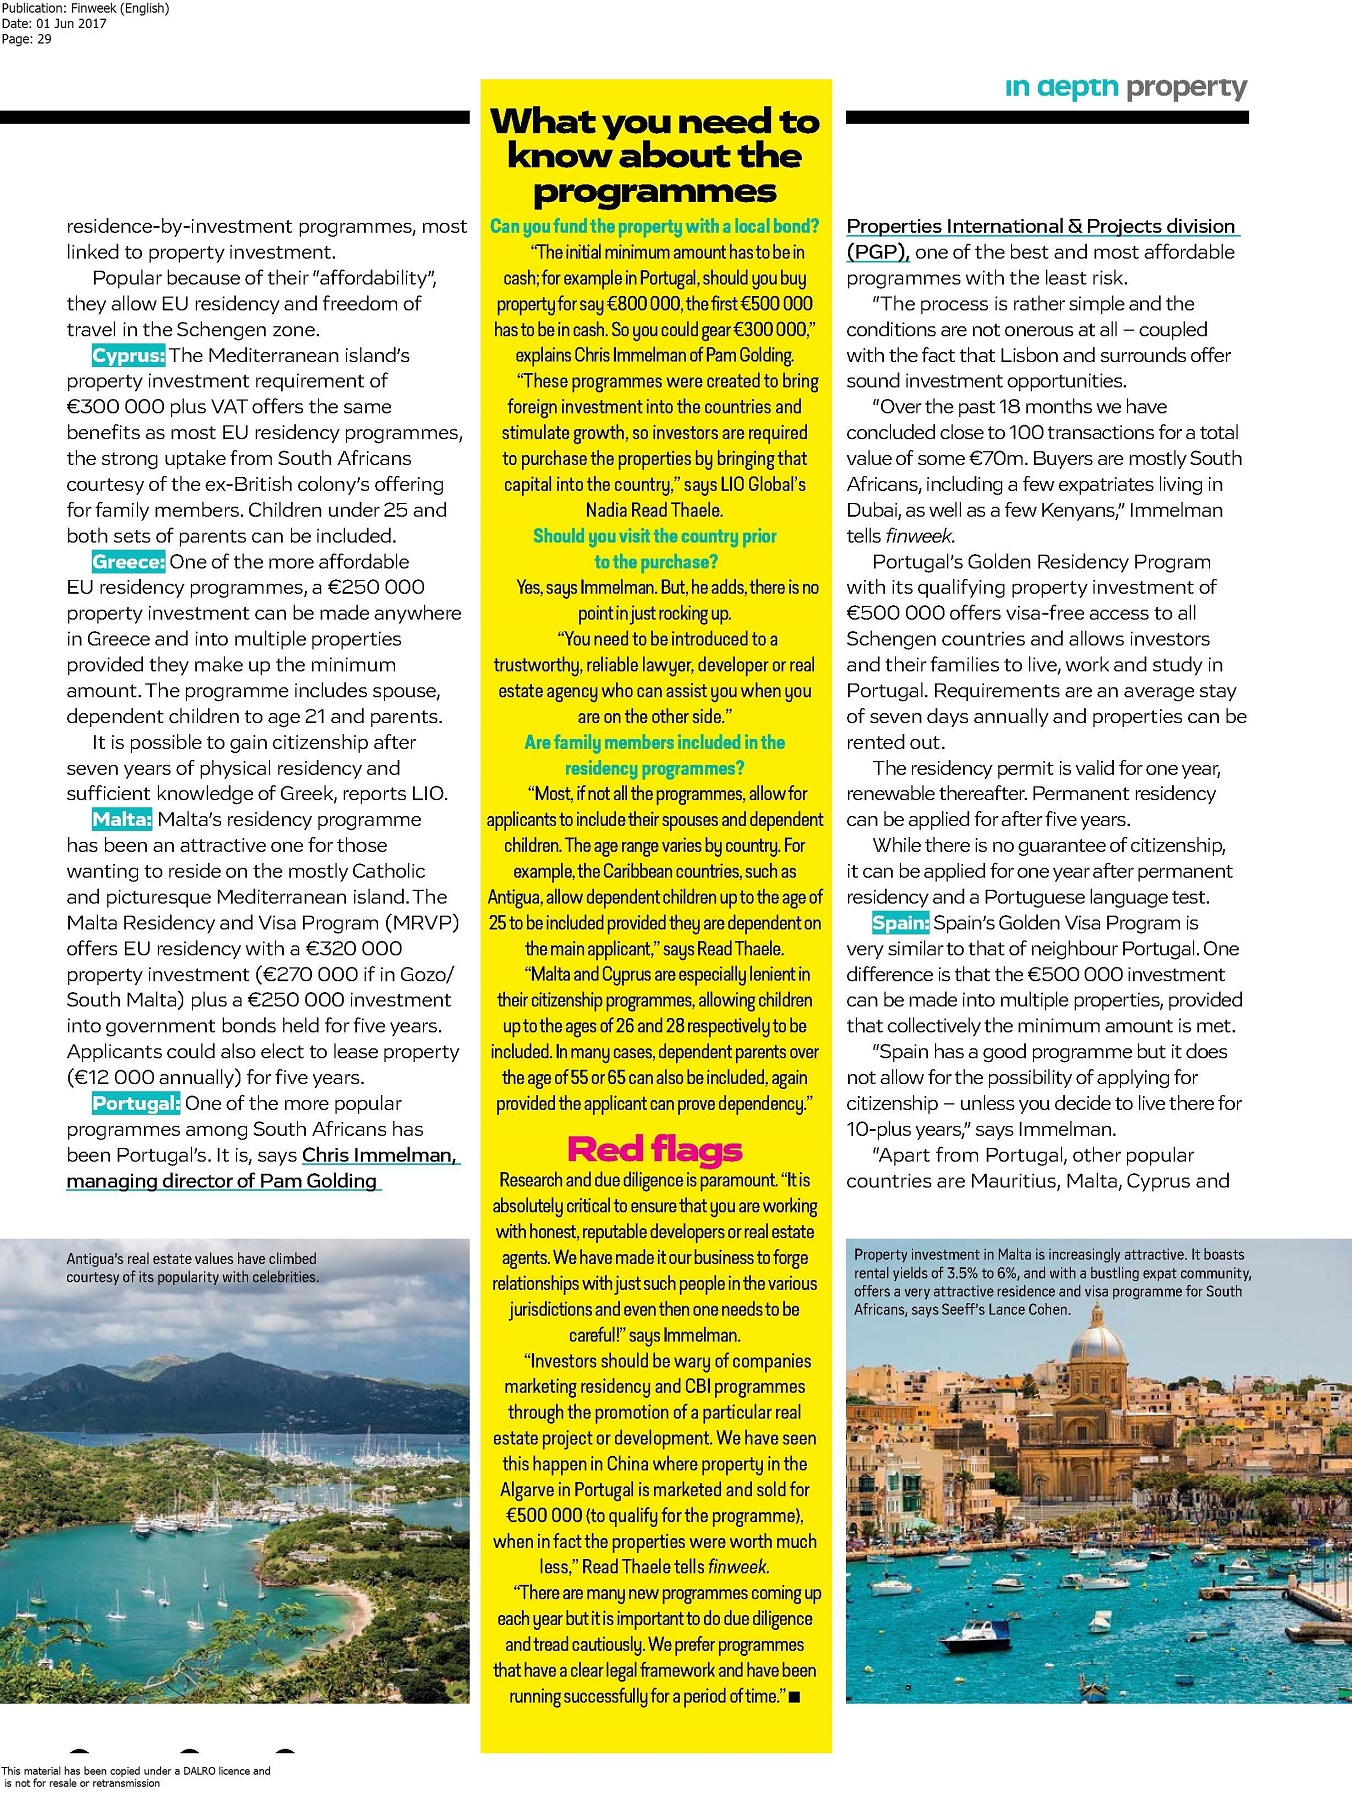 Finweek English LIO Global - pg 1 of 3 - Offshore property and visas incl. Malta - May 2017 (2).jpg